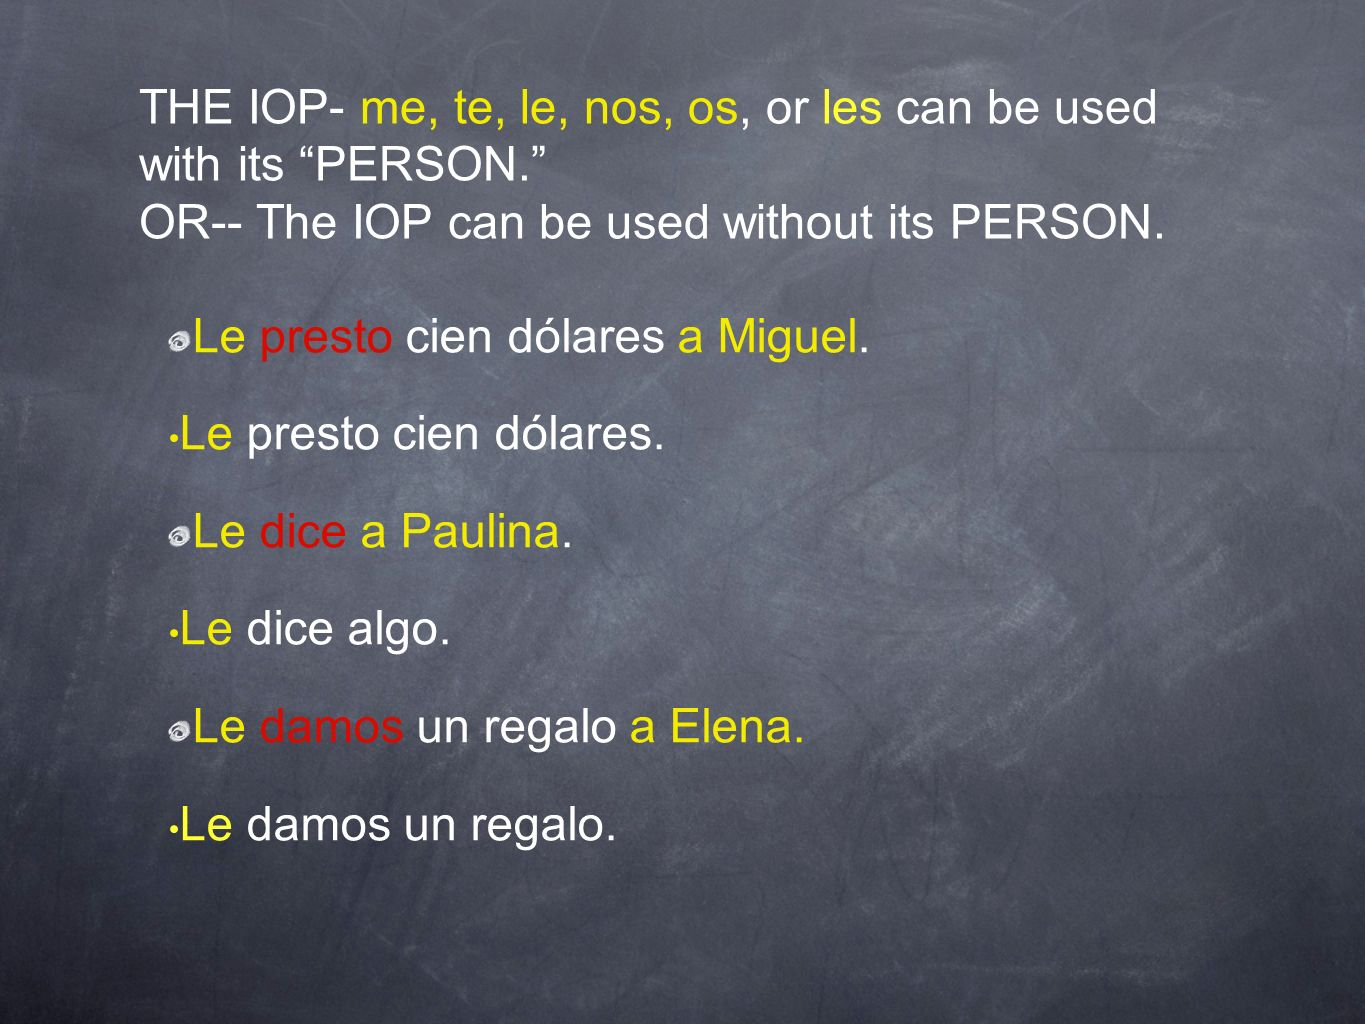 THE IOP- me, te, le, nos, os, or les can be used with its PERSON